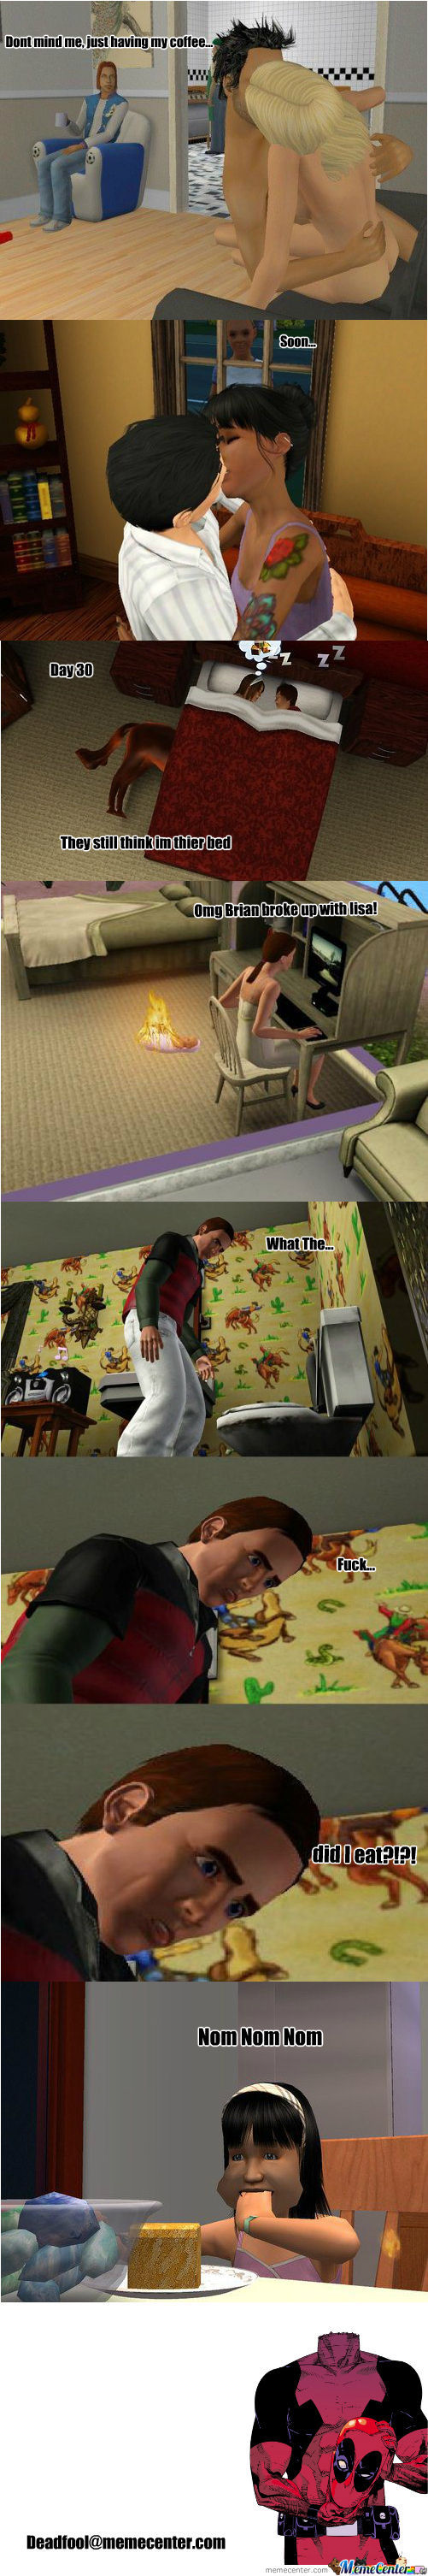 Sims...just Like Real Life...